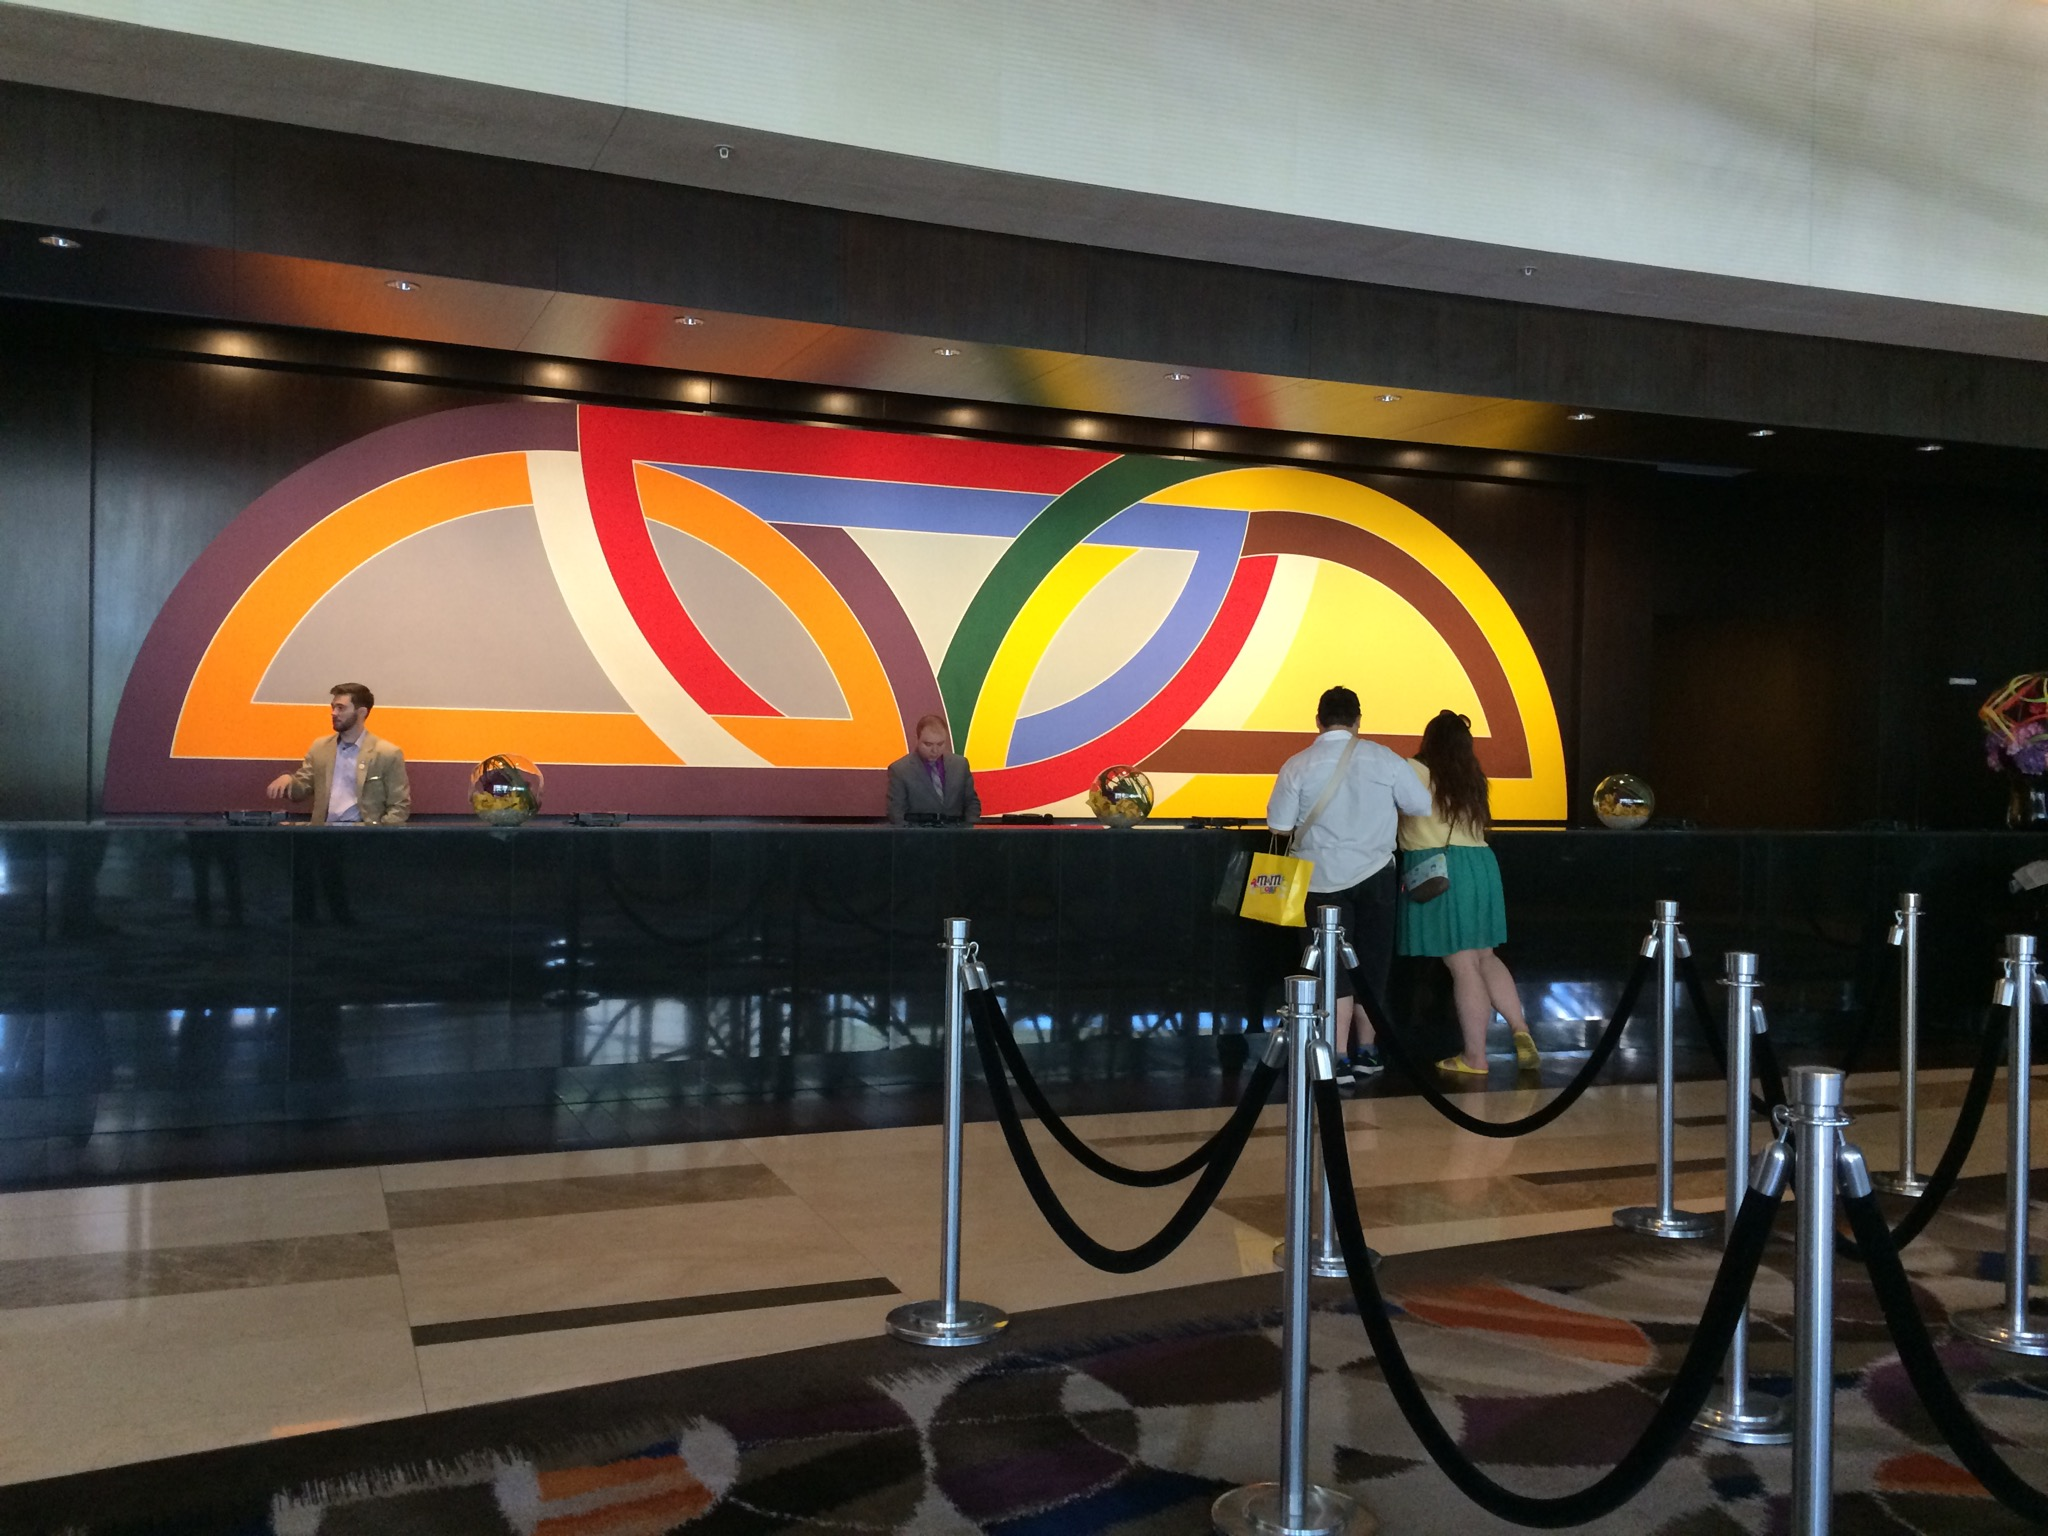 This vibrant work by Frank Stella dominates the front desk in the Vdara Hotel lobby (a non-gambling, non-smoking hotel). The space was constructed to accommodate the canvas. Stella, 80, is a popular, well-known artist who lives and still works in New York. Photo by E'louise Ondash